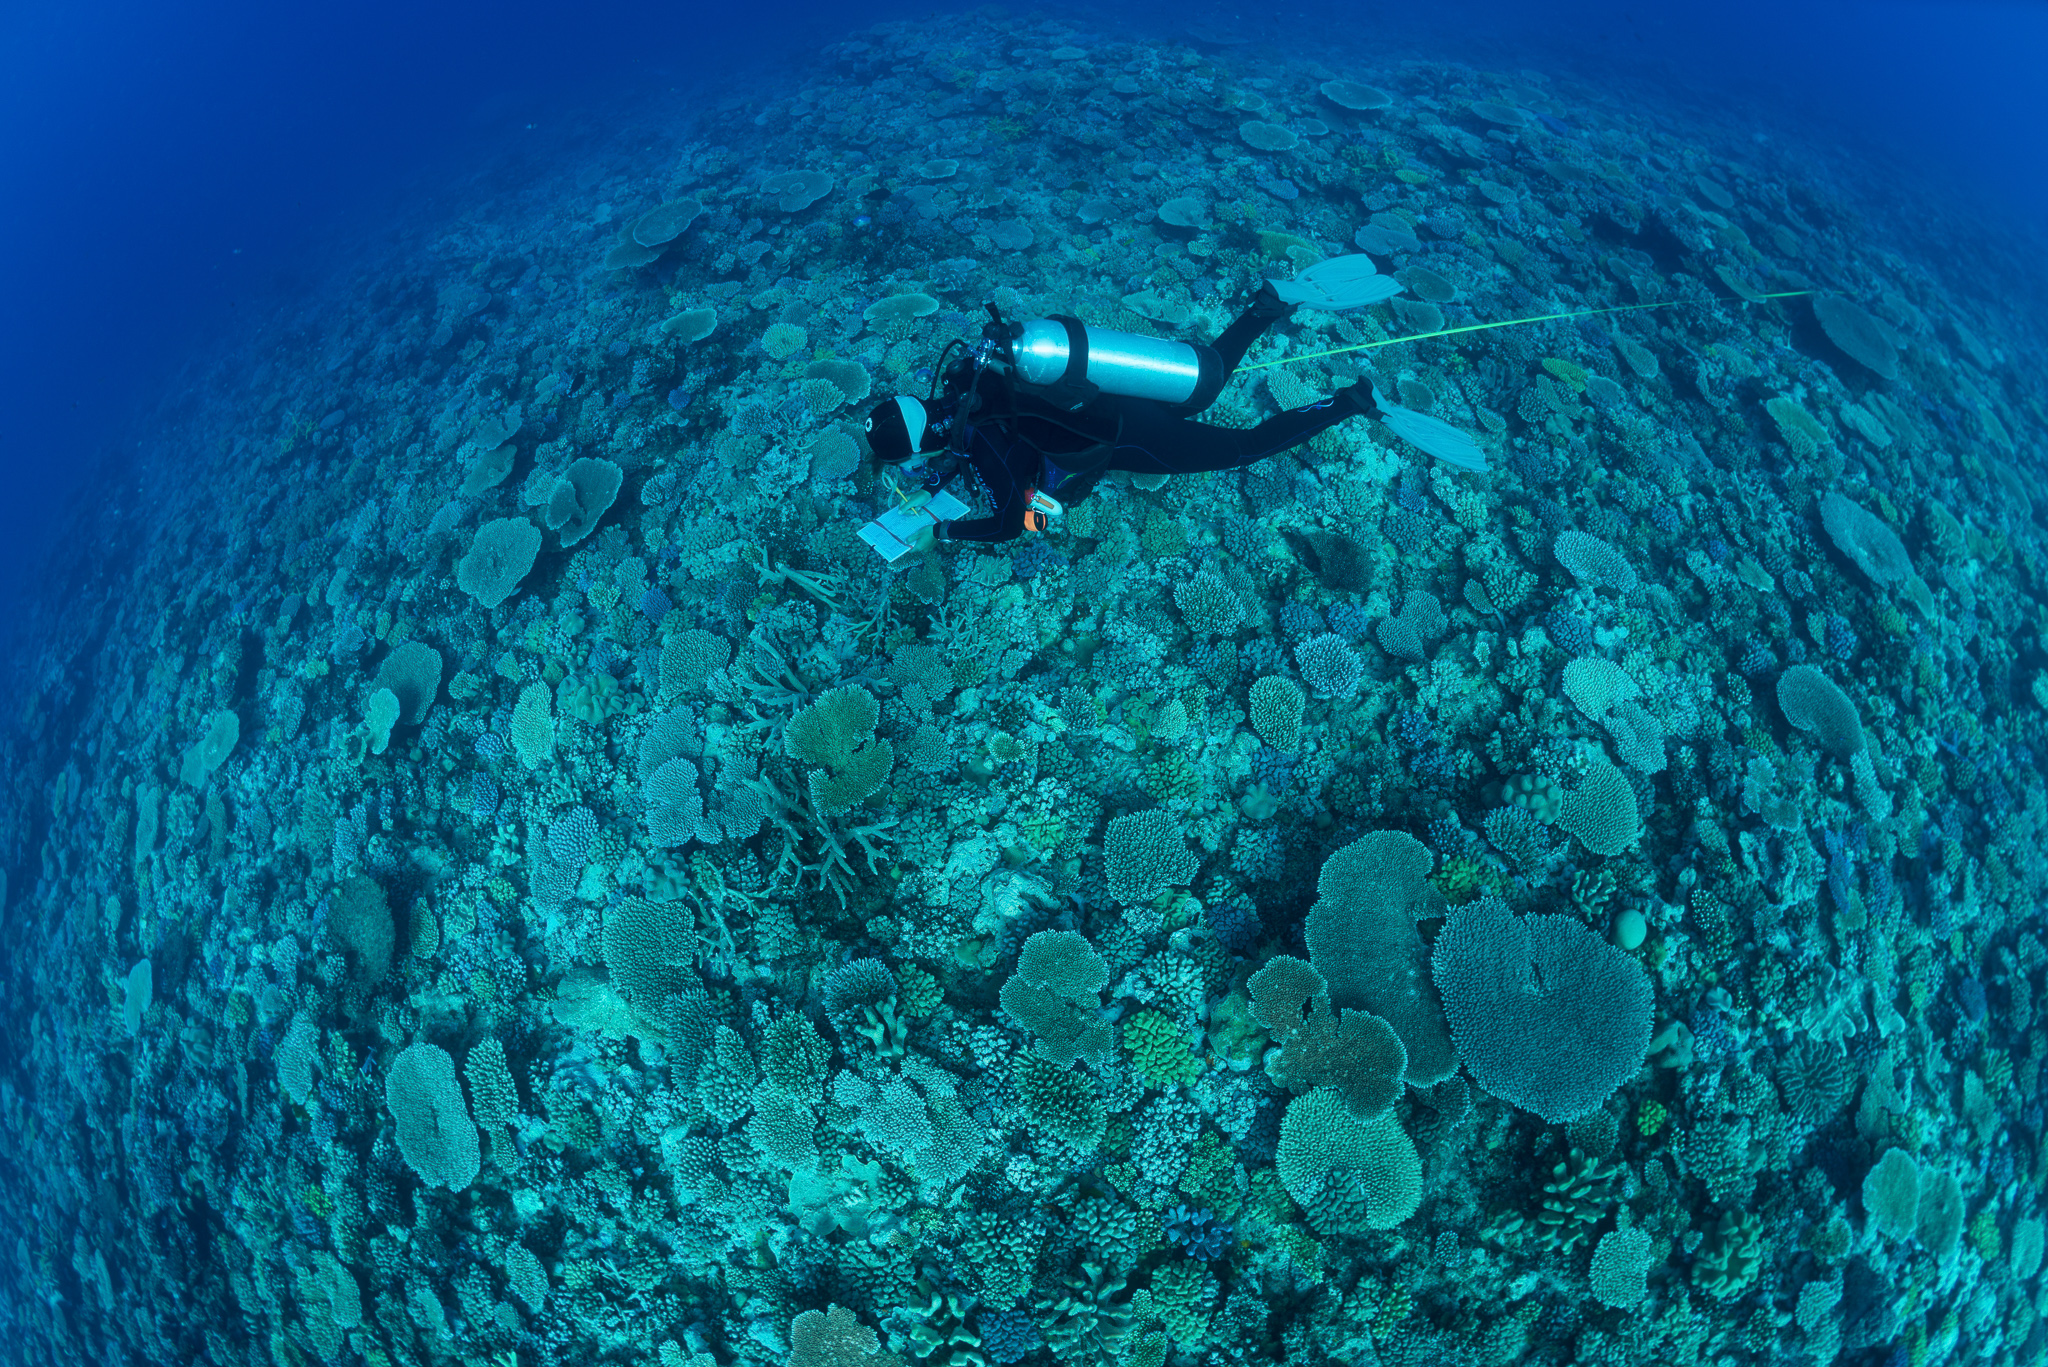 The Global Reef Expedition at the IUCN World Conservation Congress